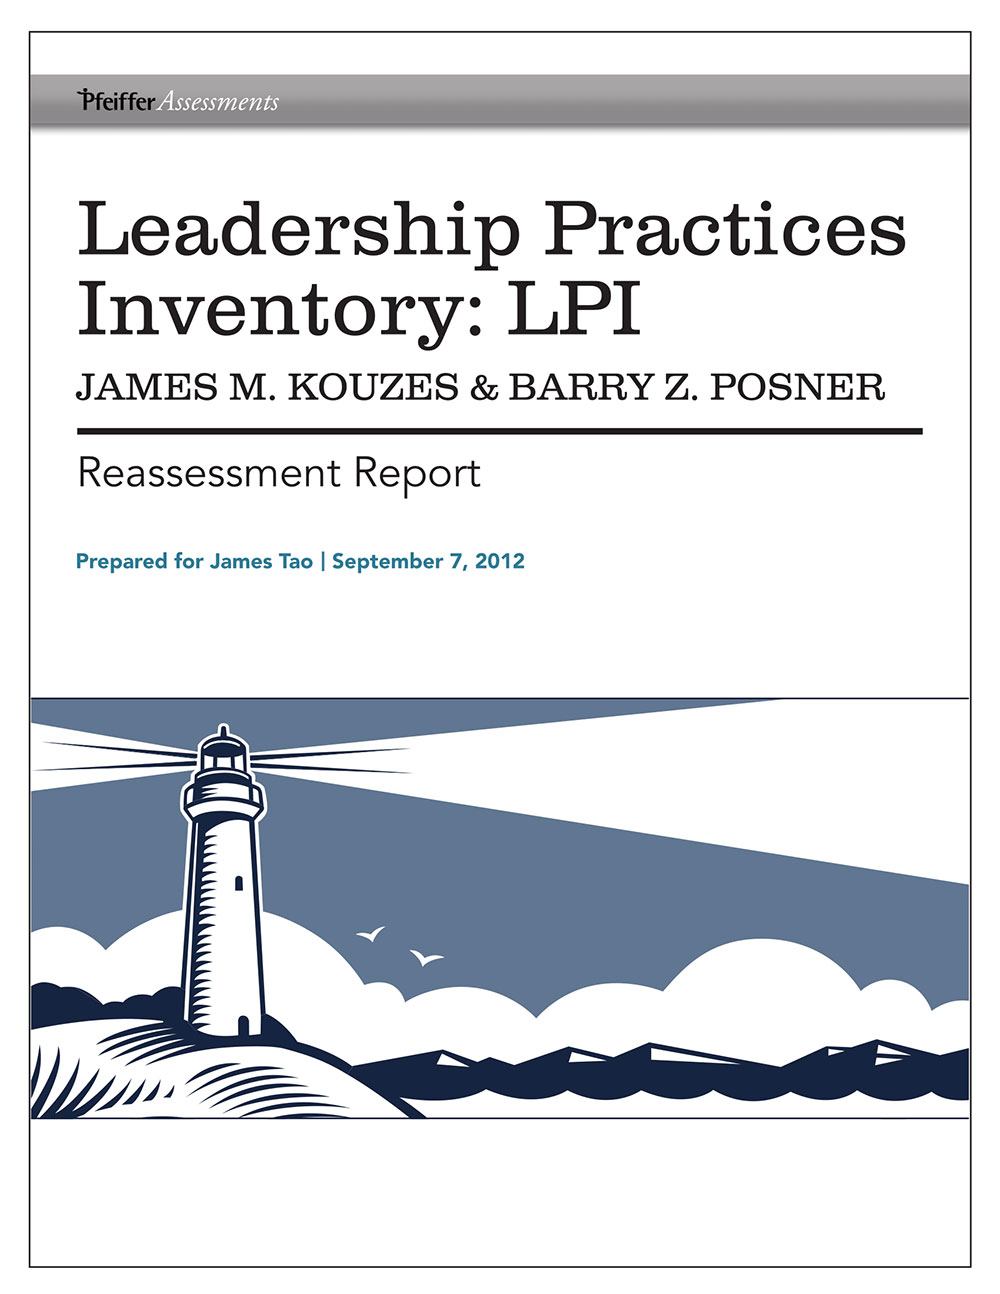 leadership management practices inventory lpi The student leadership practices inventory 360 (student lpi 360) instrument is an essential tool to help you gain perspective into how you see yourself as a leader, how others view you, and what actions you can take to improve your use of the five practices.